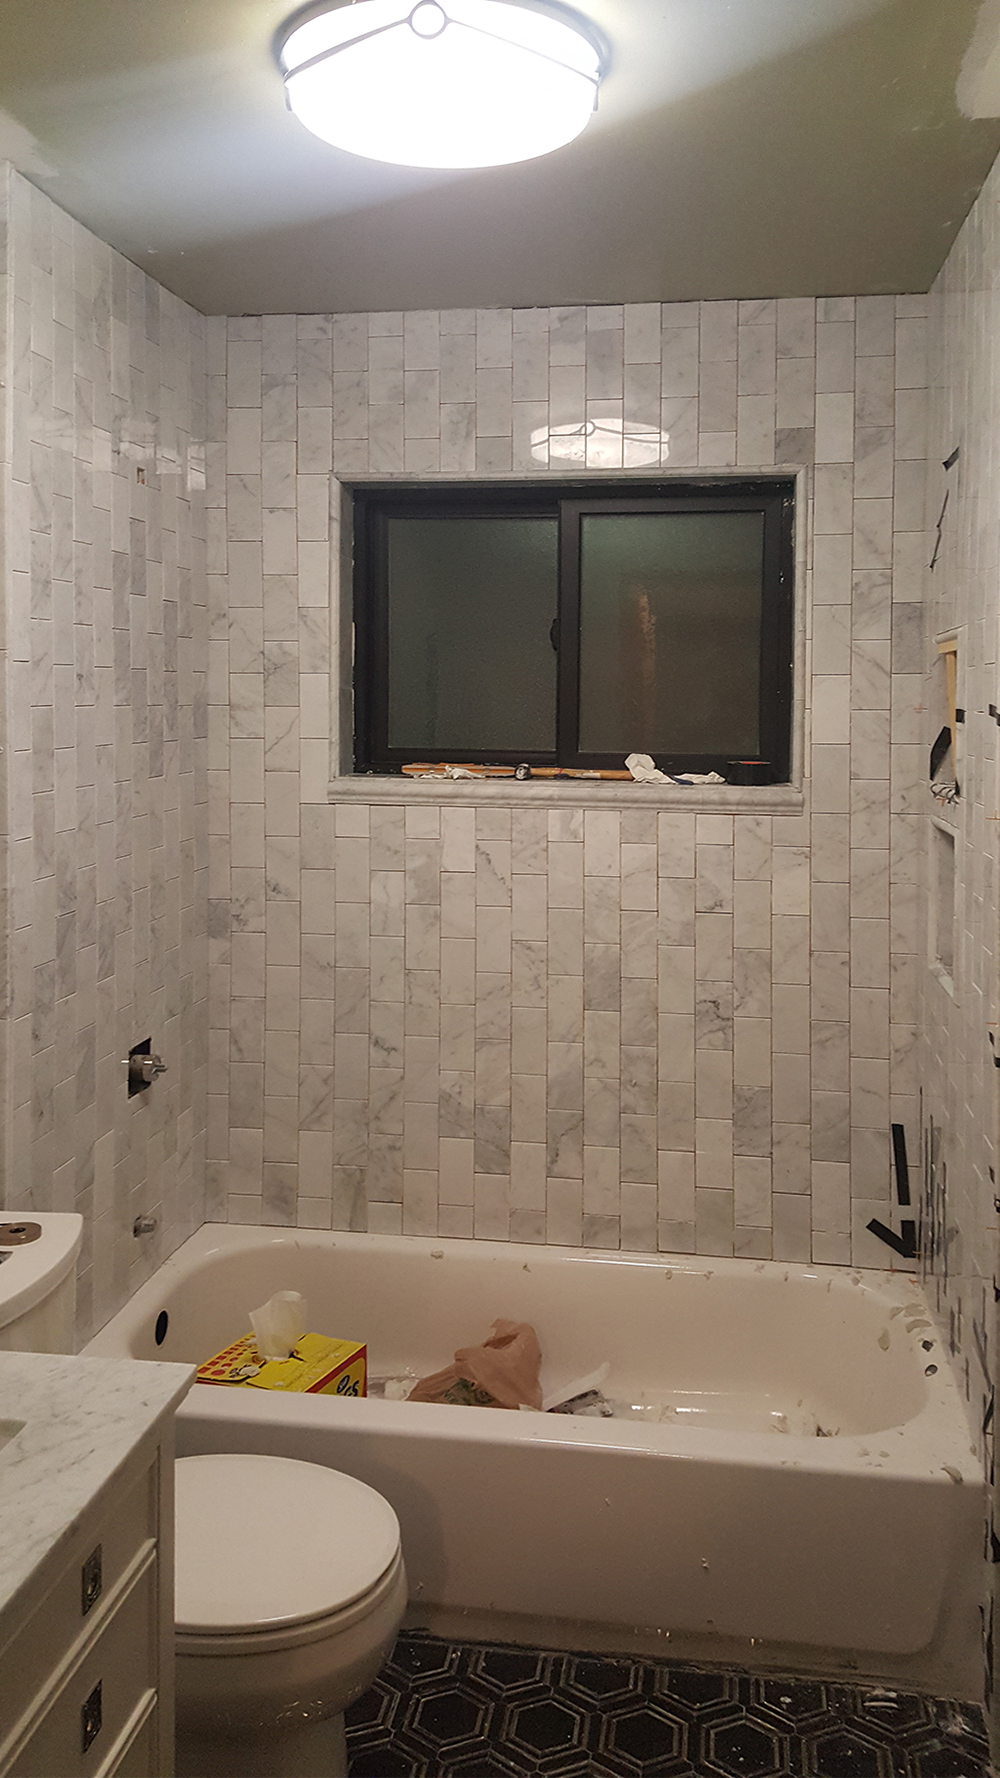 Tile Before Grouting